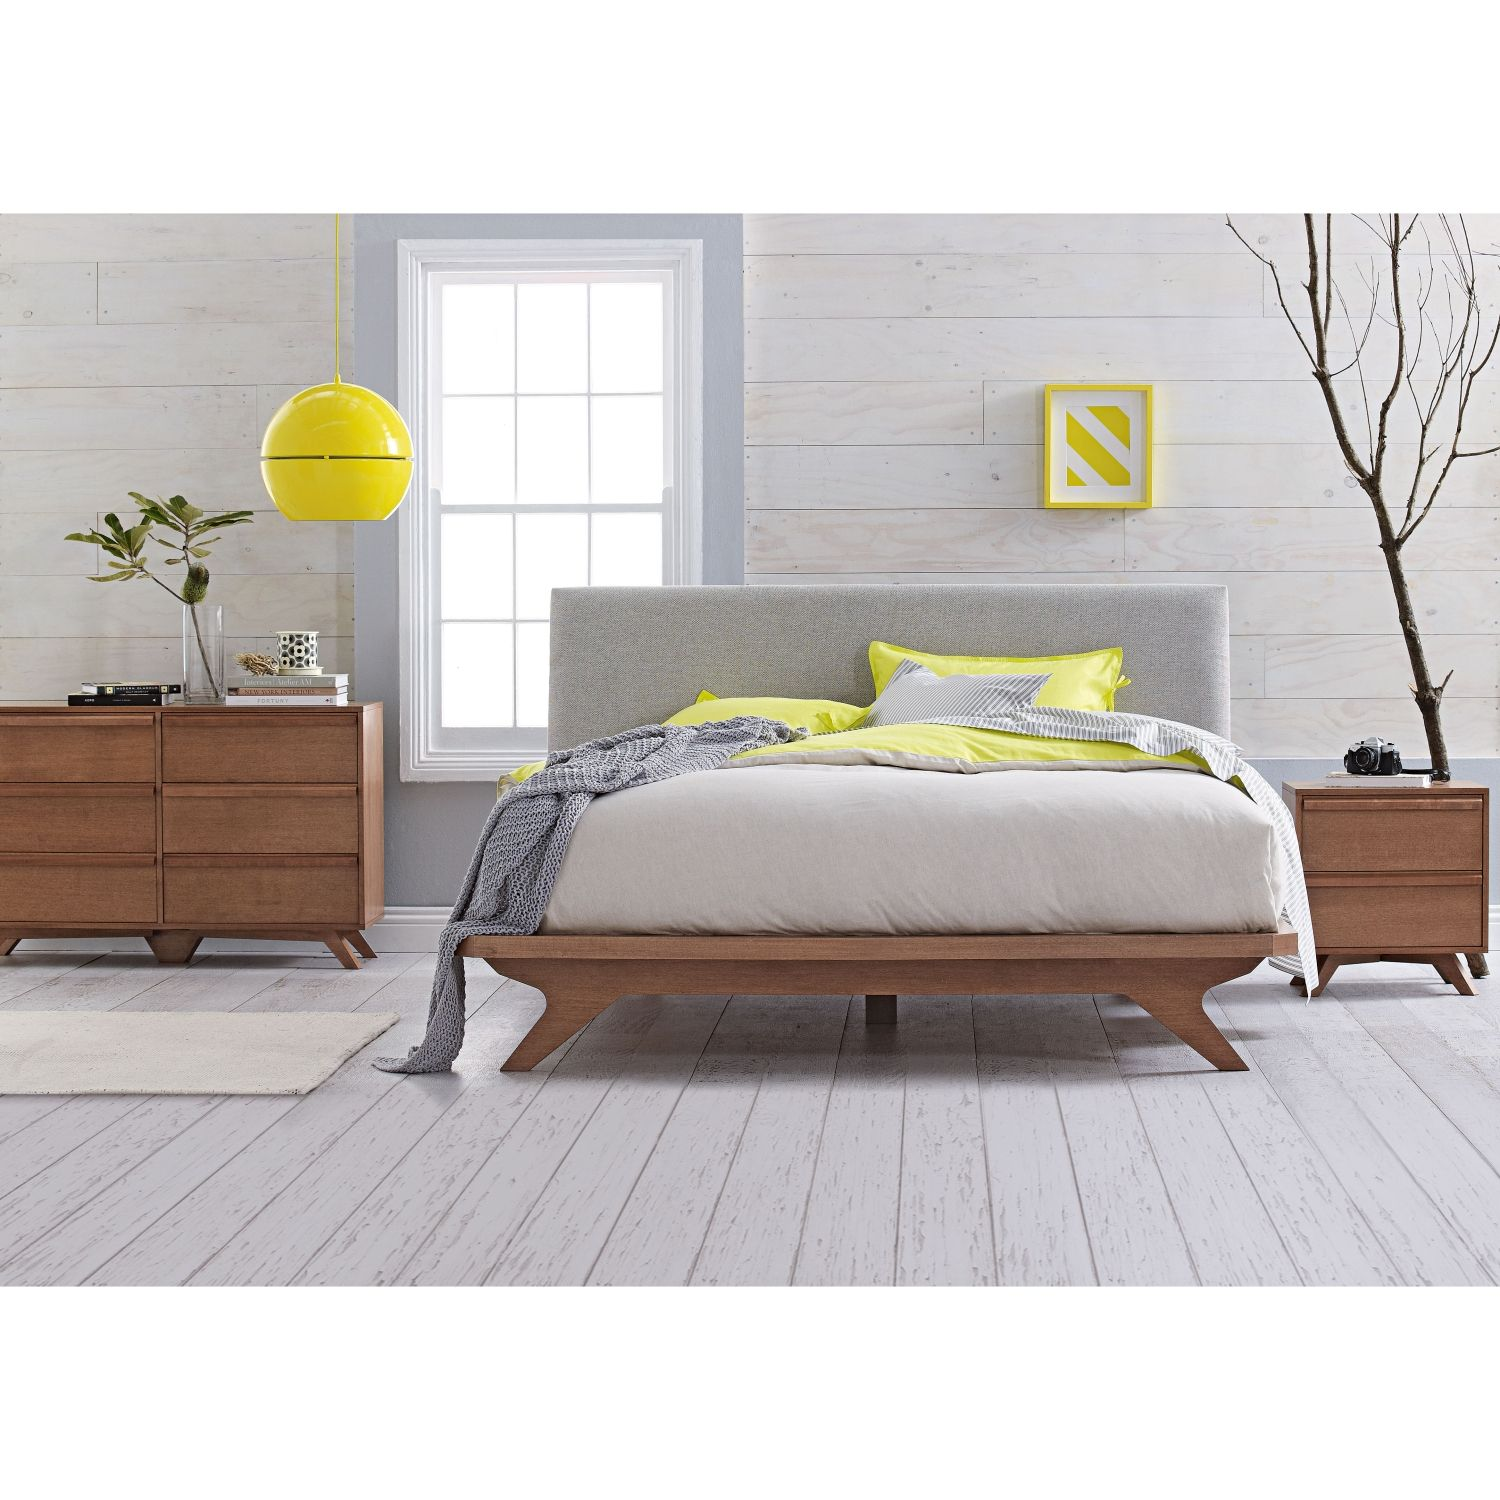 Calibra bed frame domayne online store hycraft furniture